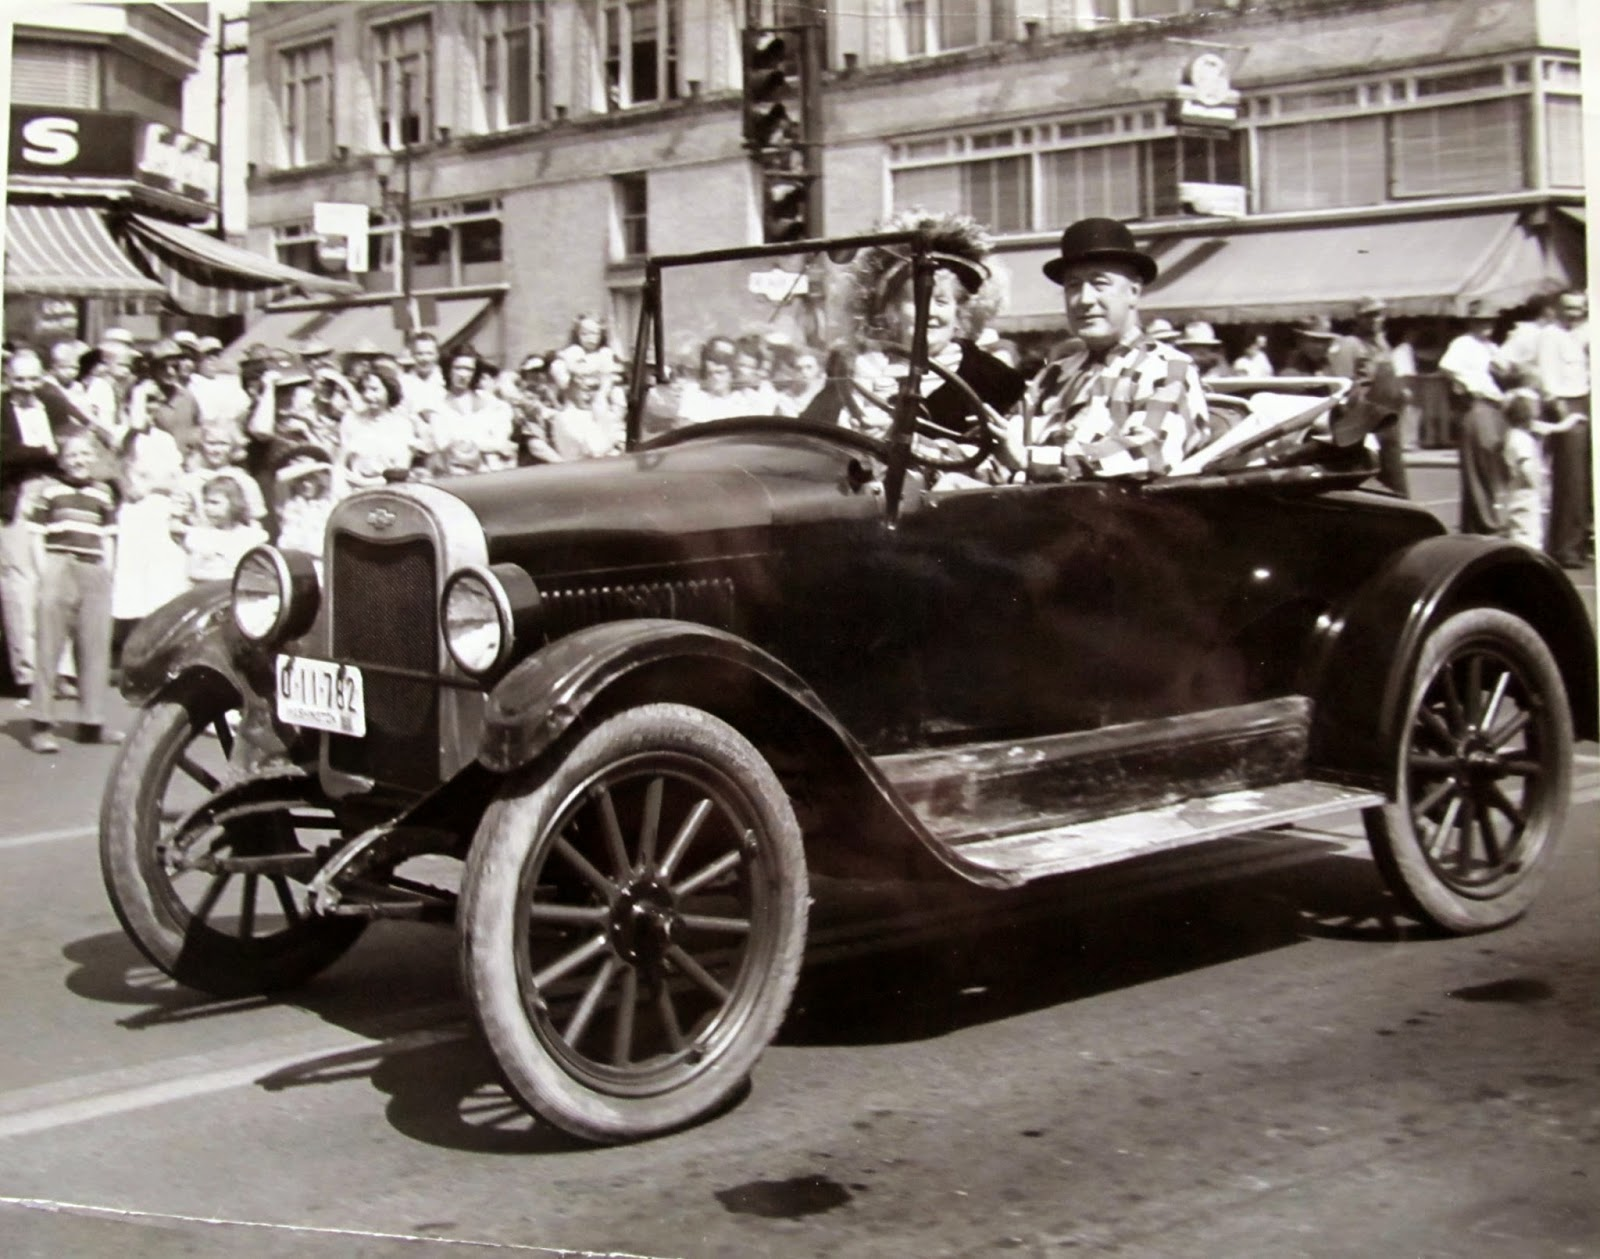 bygone walla walla vintage images of the city and county alberta dooly and bill beaver were frequent riders in the fair parades of the 1950s she was the parade marshall in 1959 thanks to lisa richards for